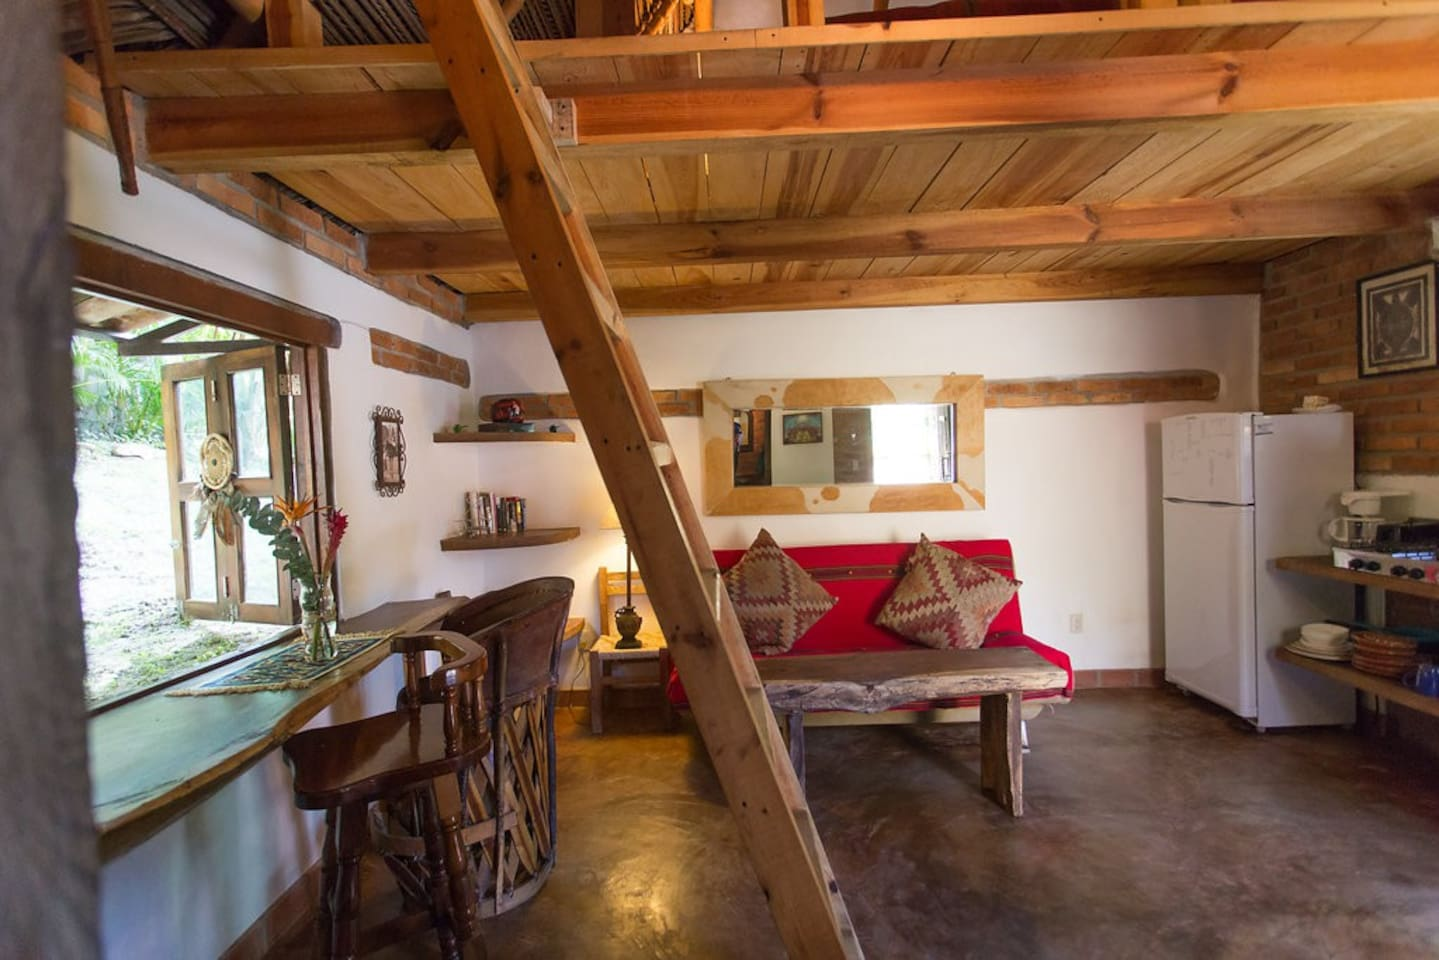 Inside the bungalow there is a futon couch, and a counter for eating. The king sized bed is upstairs in the loft.